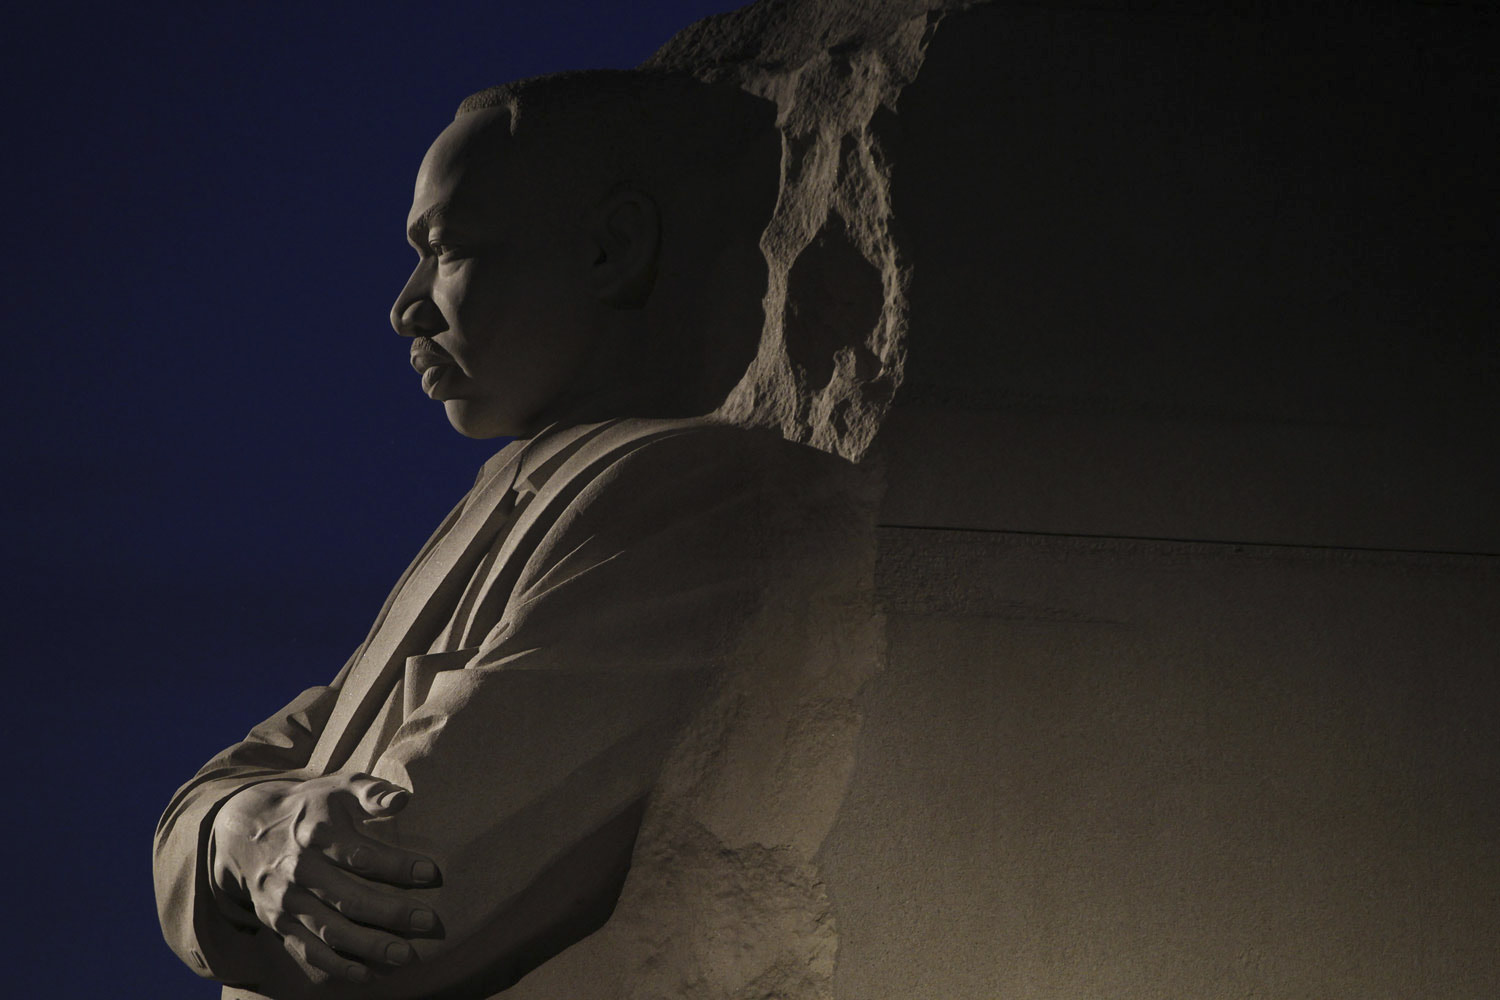 August 22, 2011. The Martin Luther King Jr. memorial on the National Mall in Washington.